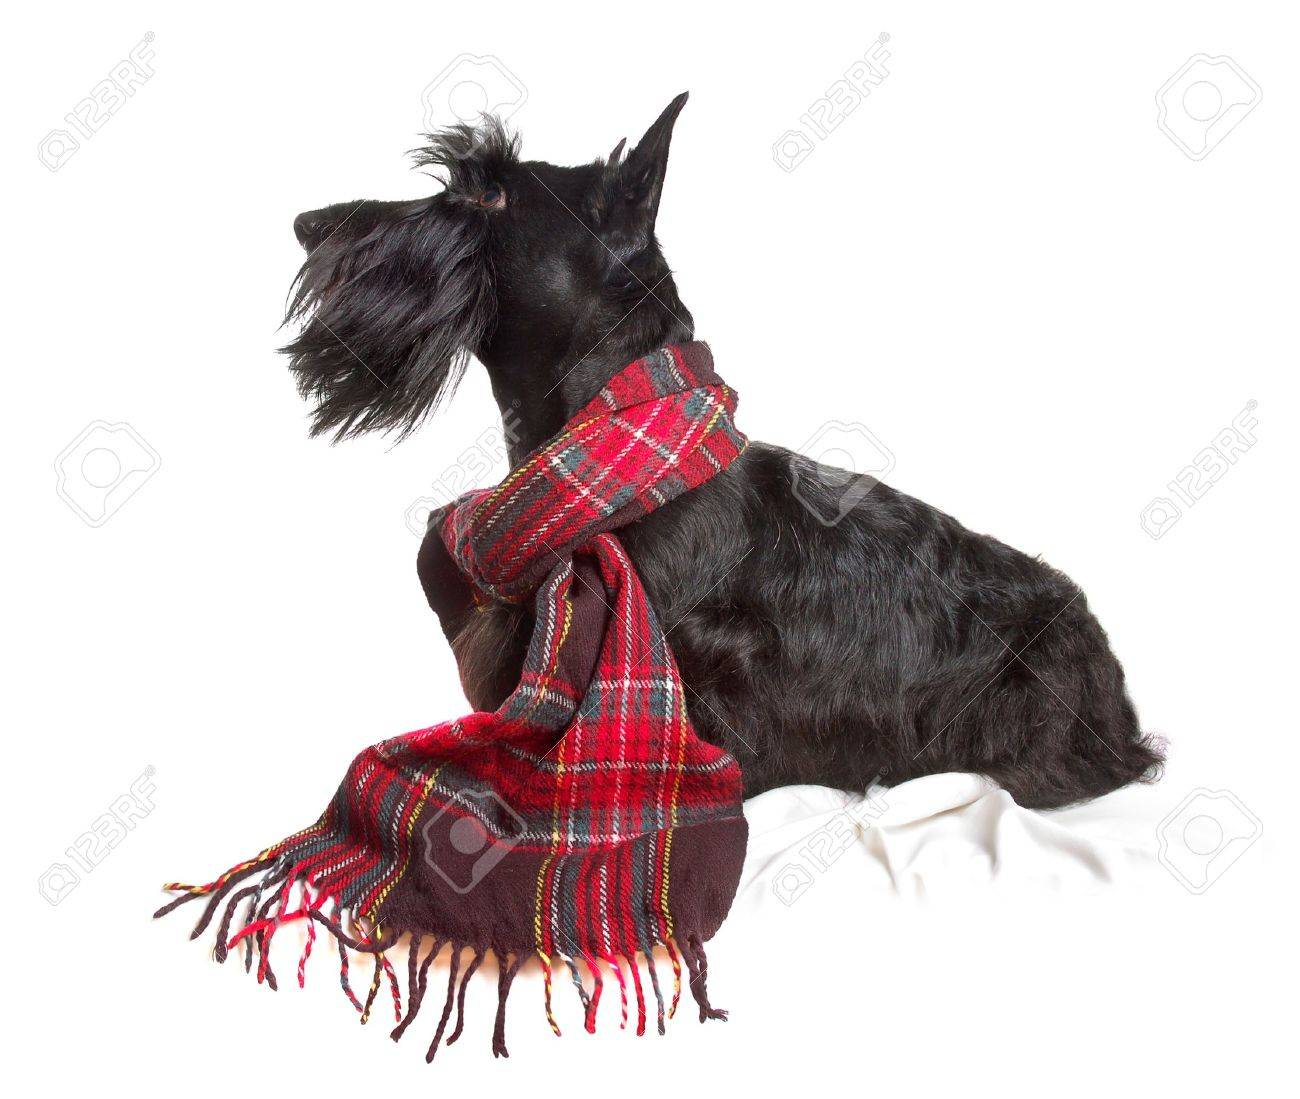 Scottish terrier in a red scarf on white background - 9139809